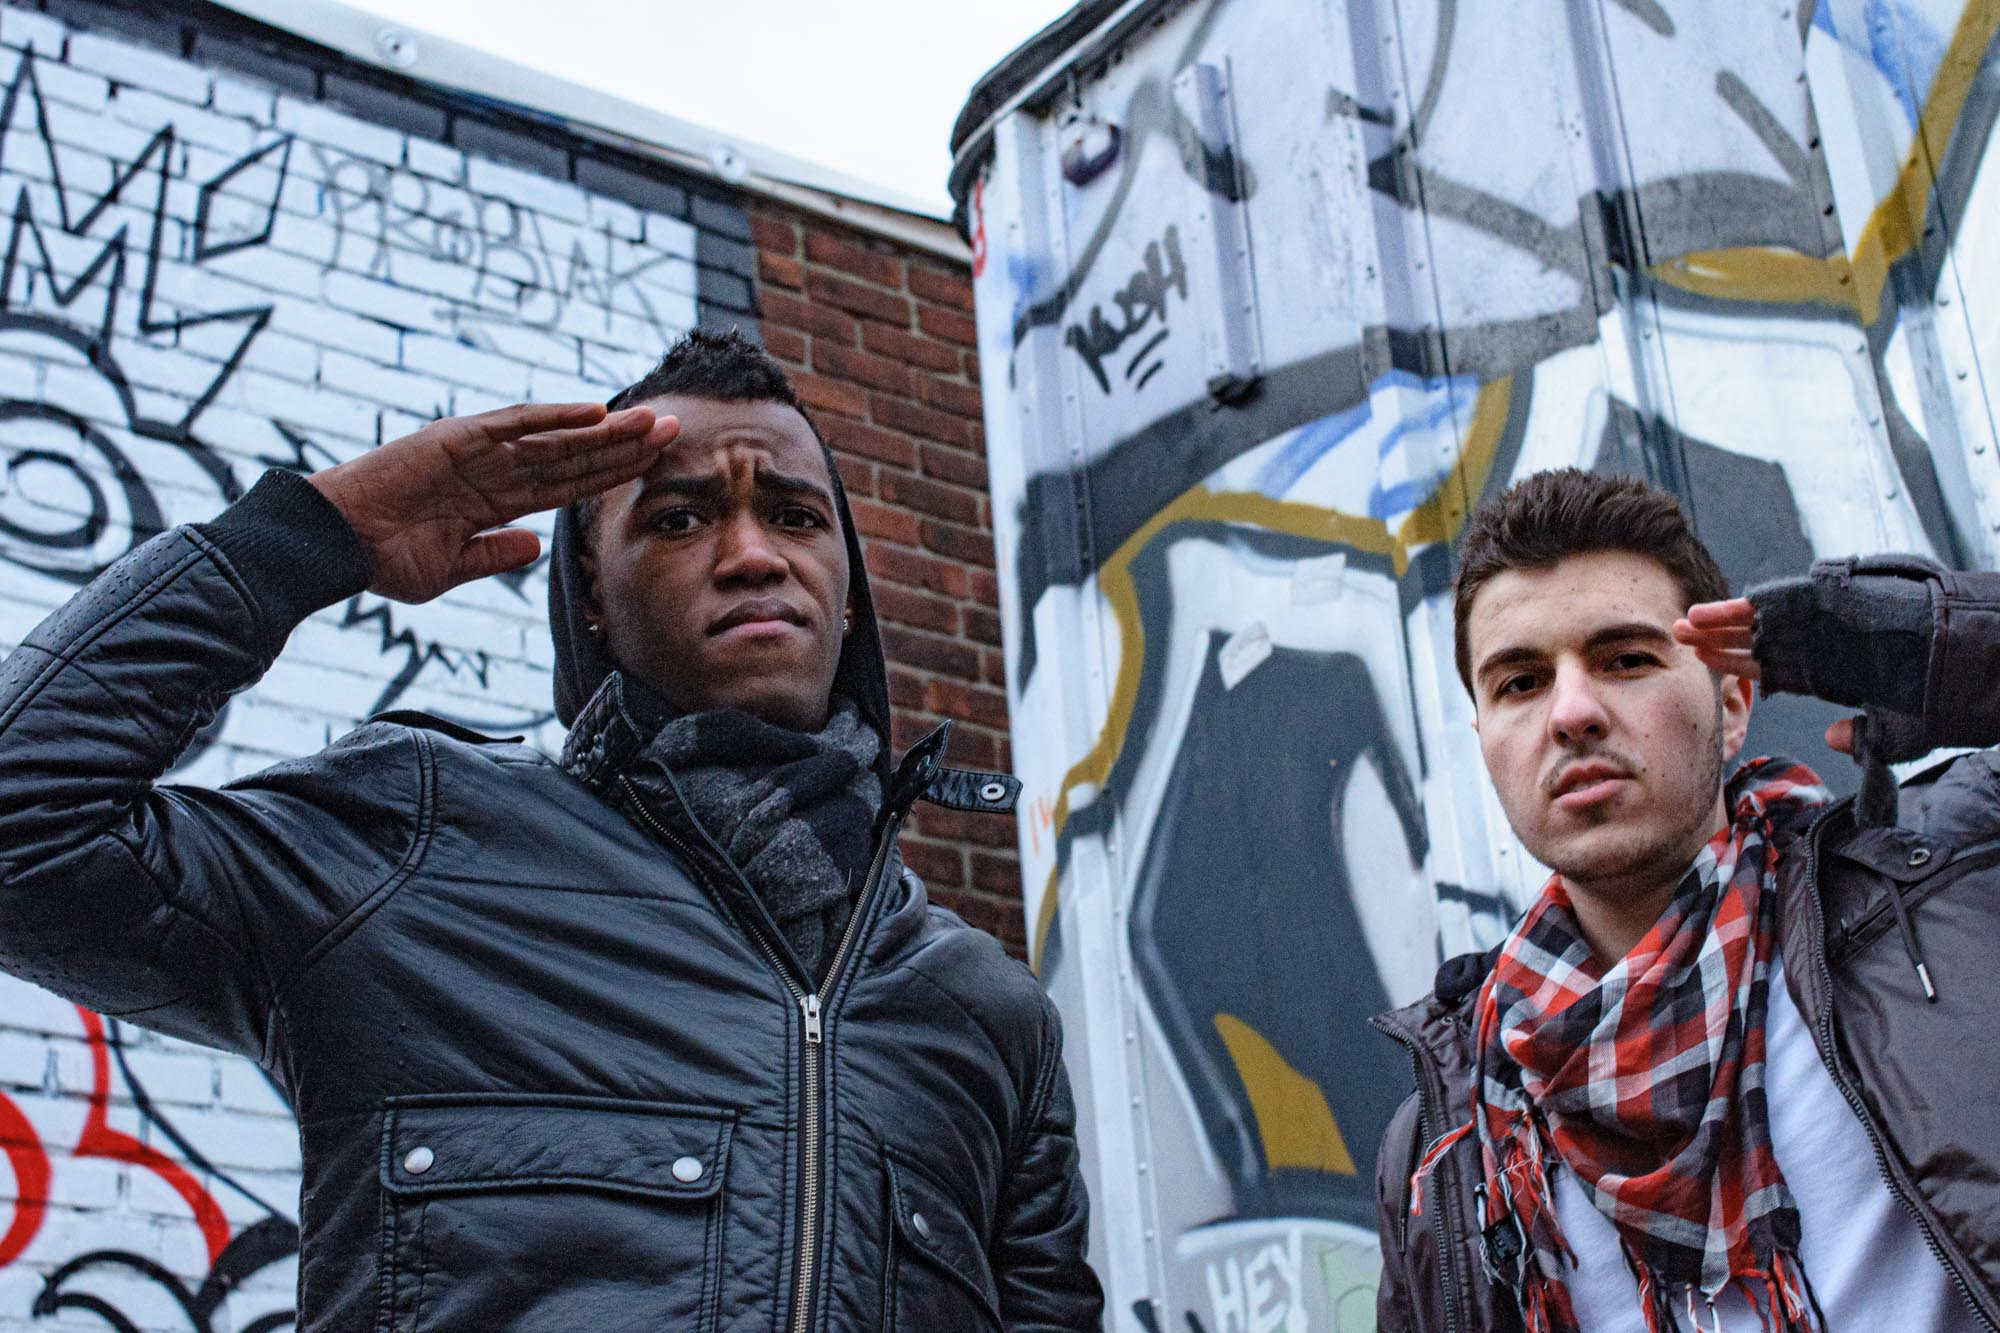 two musicians salute the camera while wearing dark leather coats and scarves